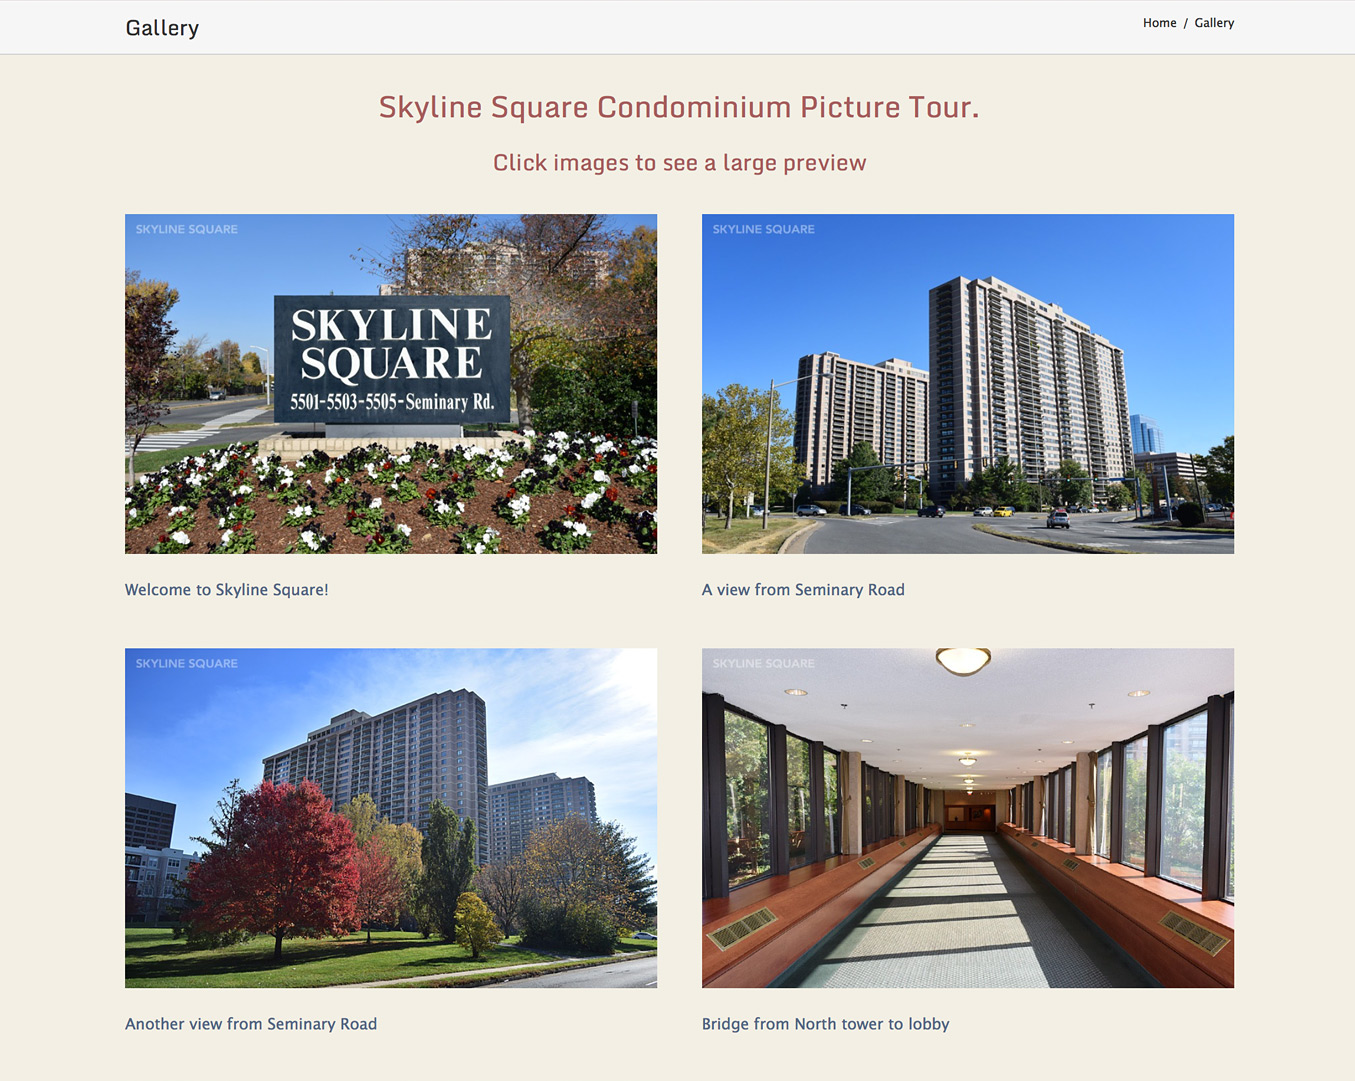 Skyline Square Condominium